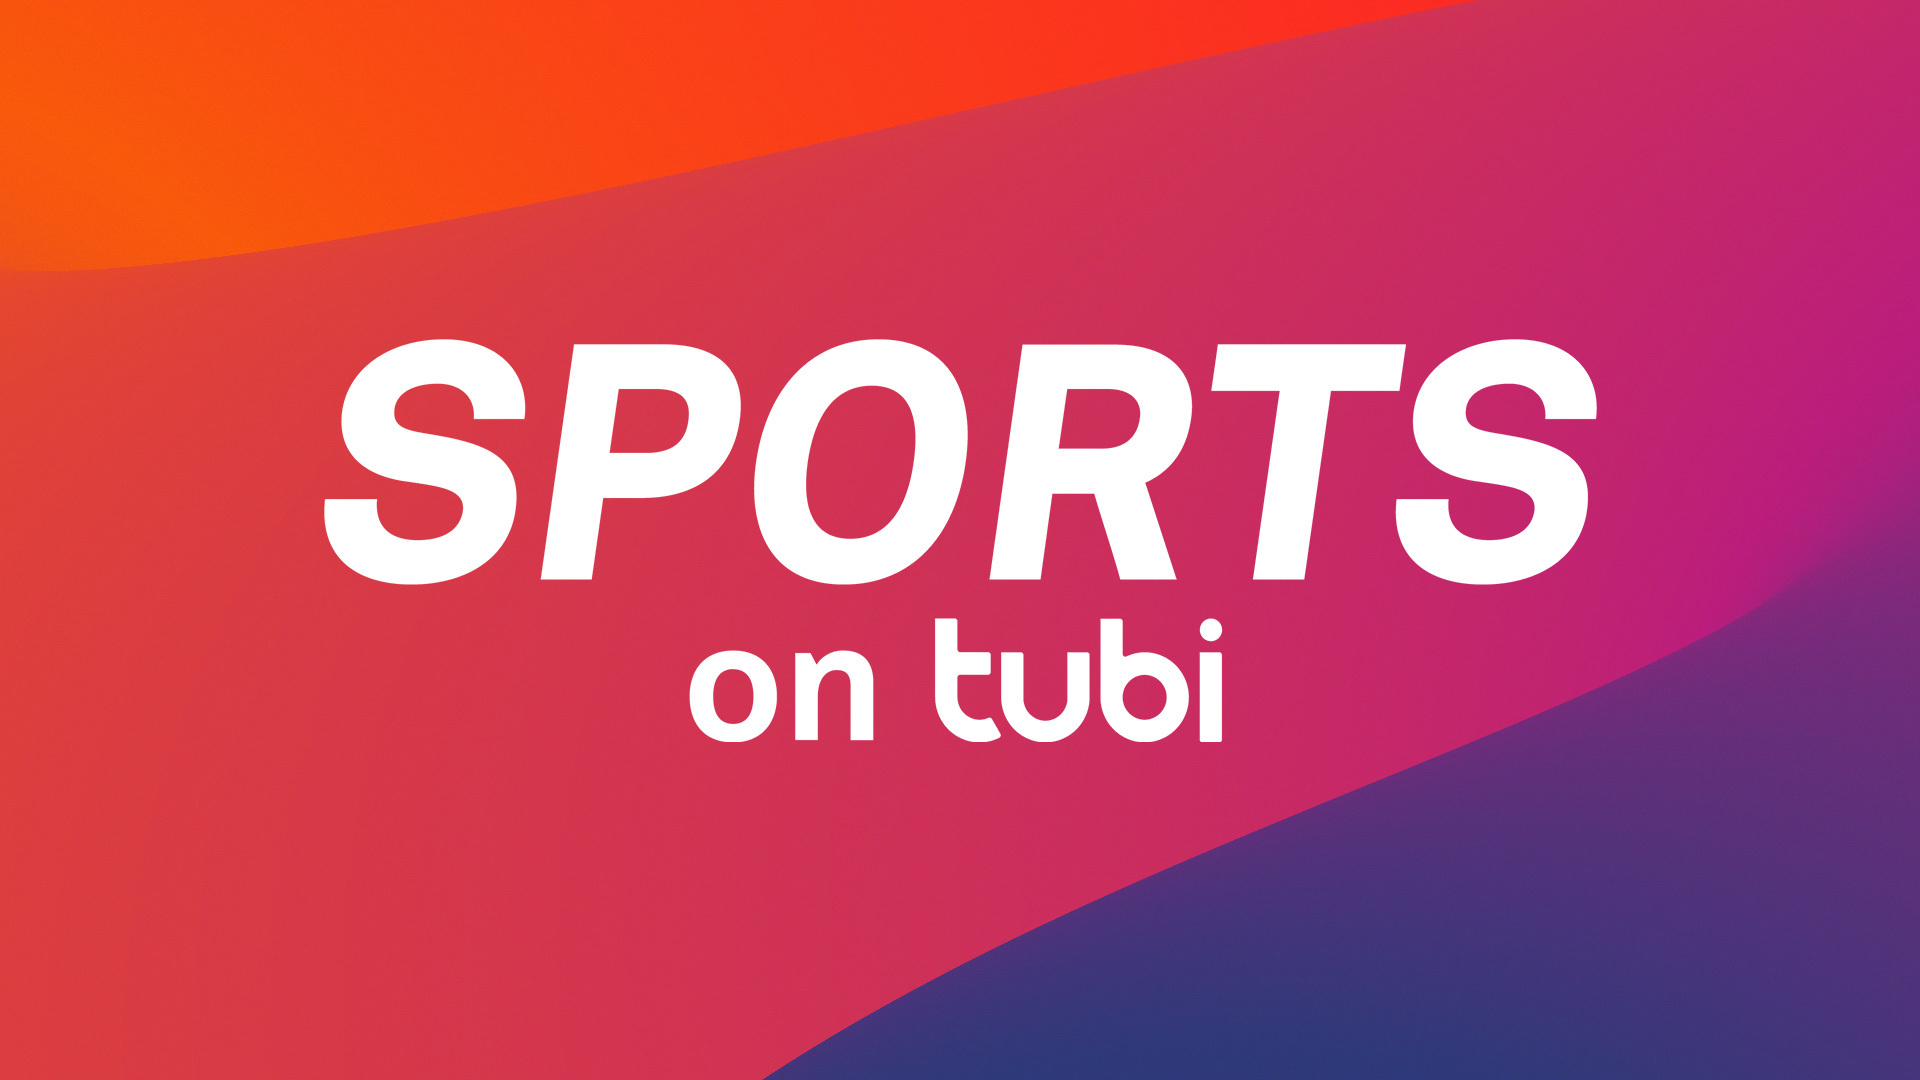 """TUBI AND FOX SPORTS TEAM UP TO LAUNCH """"SPORTS ON TUBI"""""""